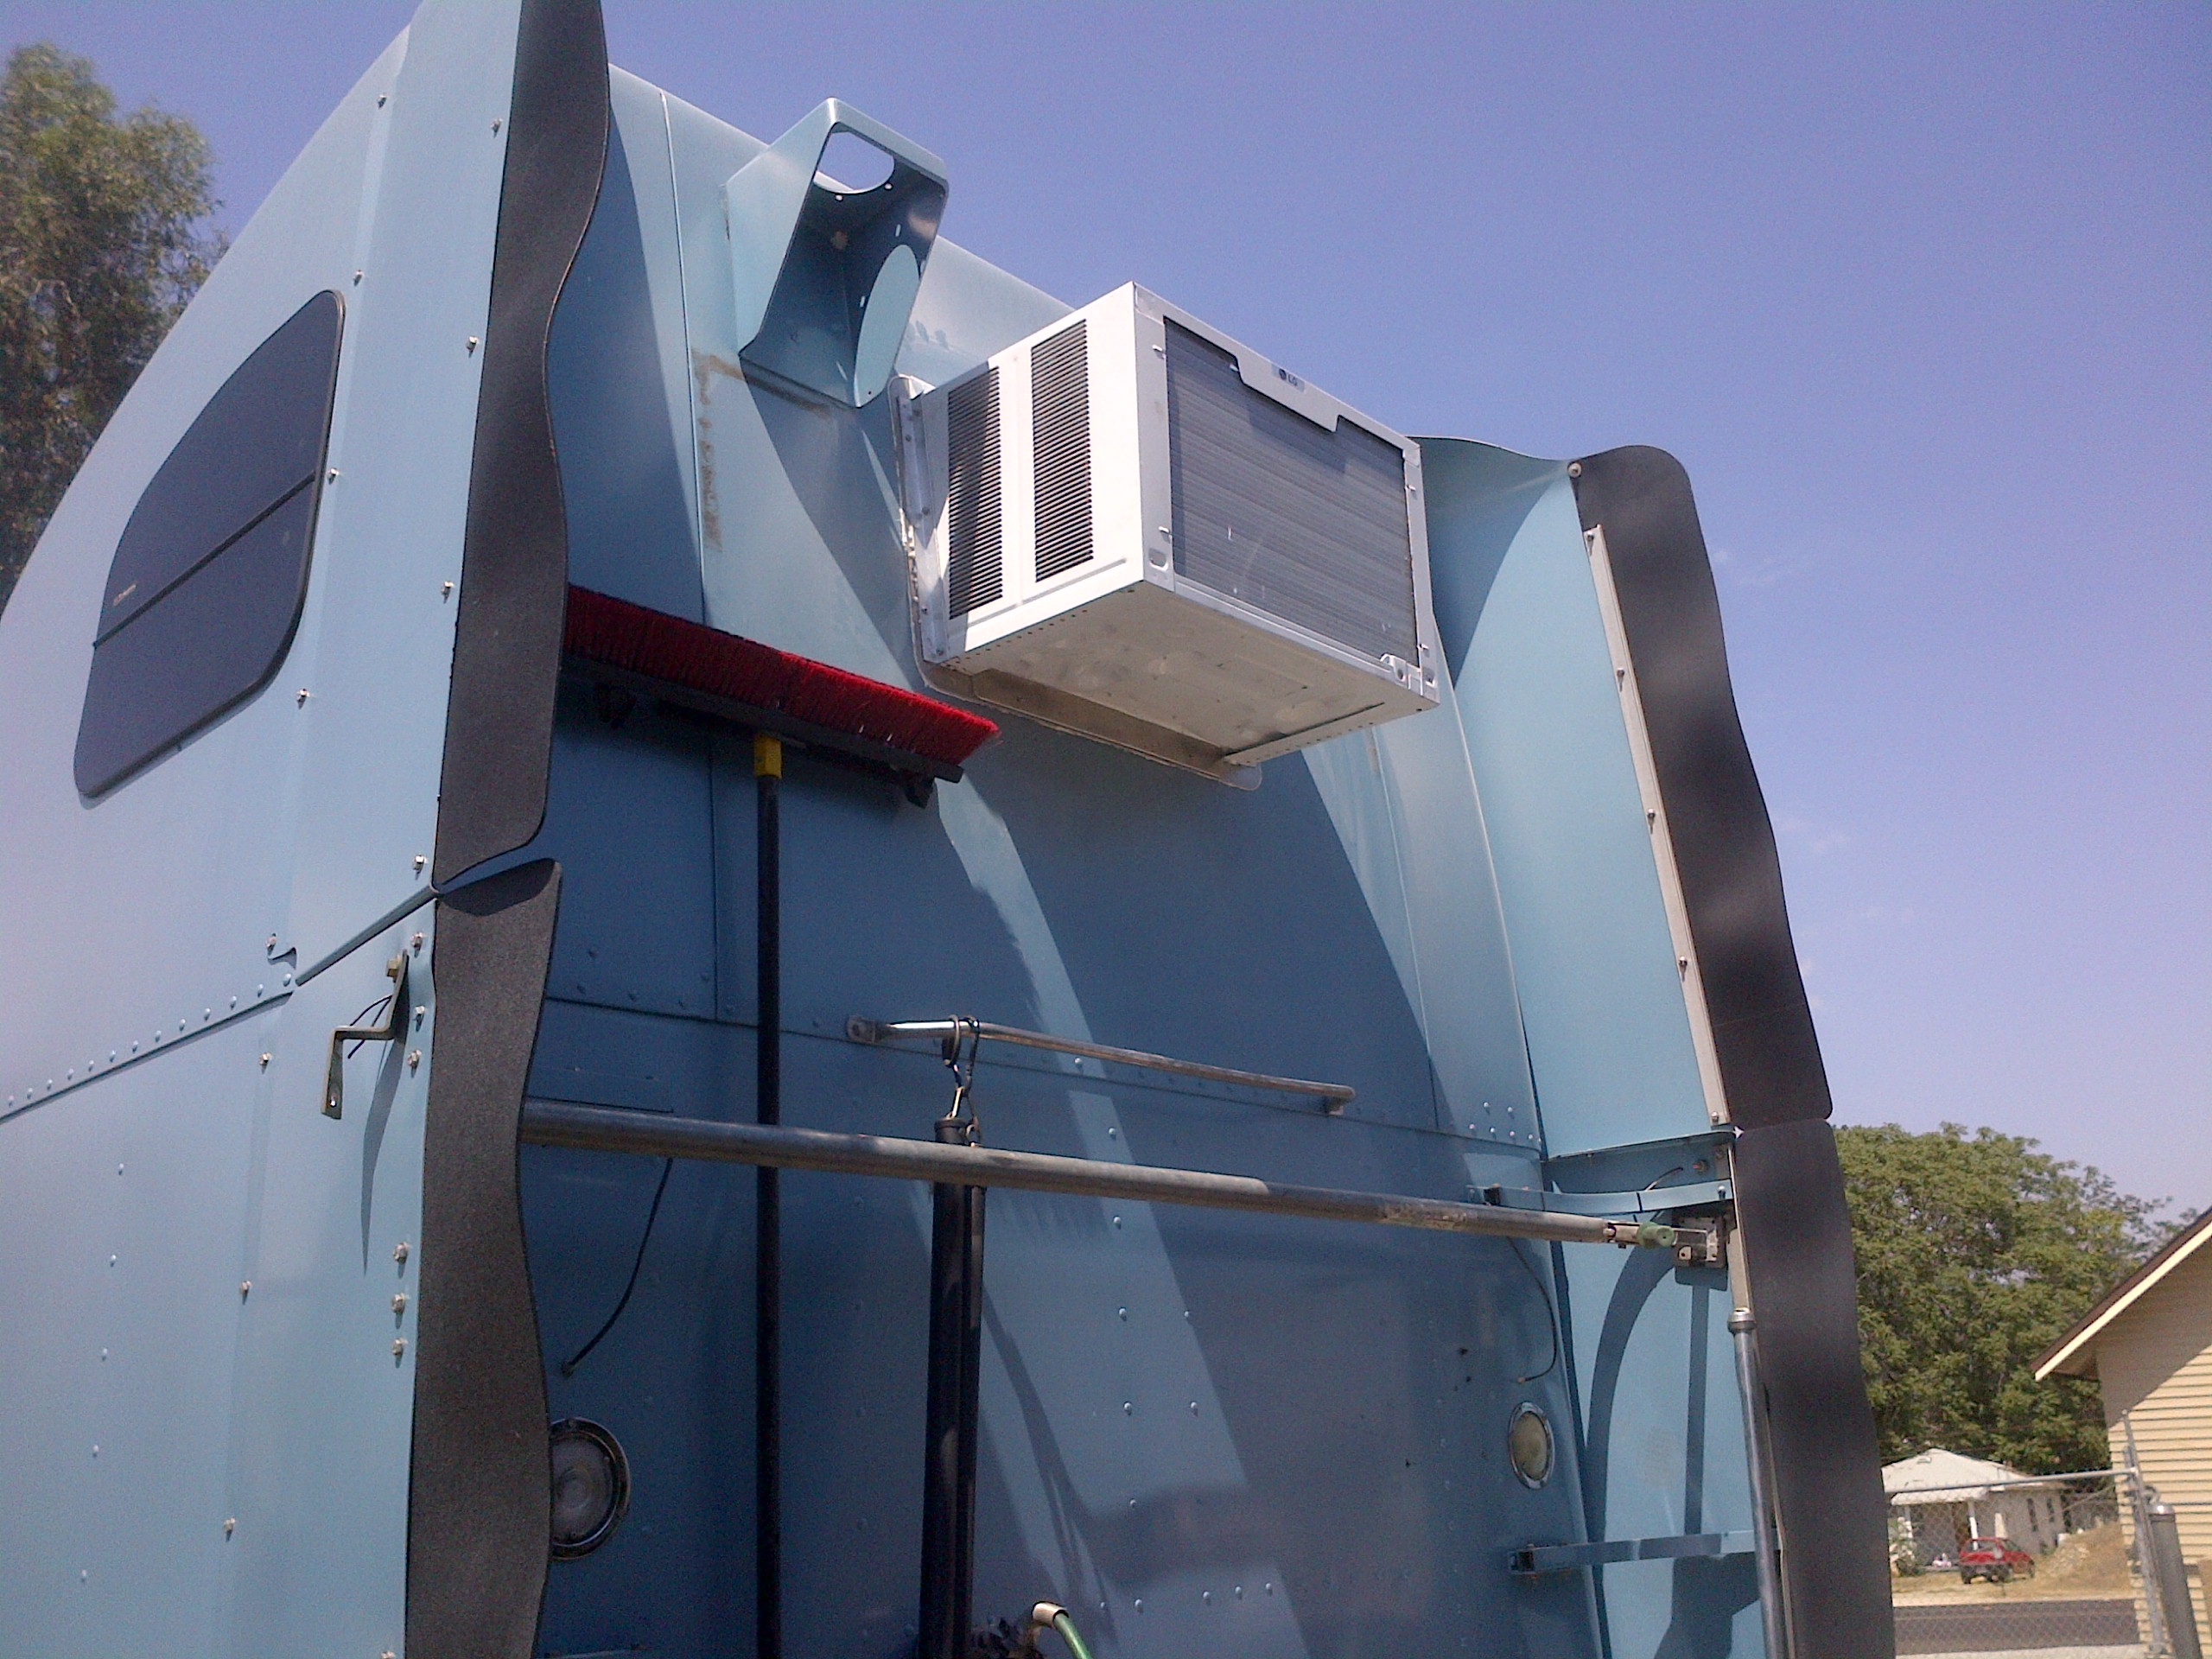 Semi Truck Air Conditioner : Semi truck air conditioner jb fabrication and welding